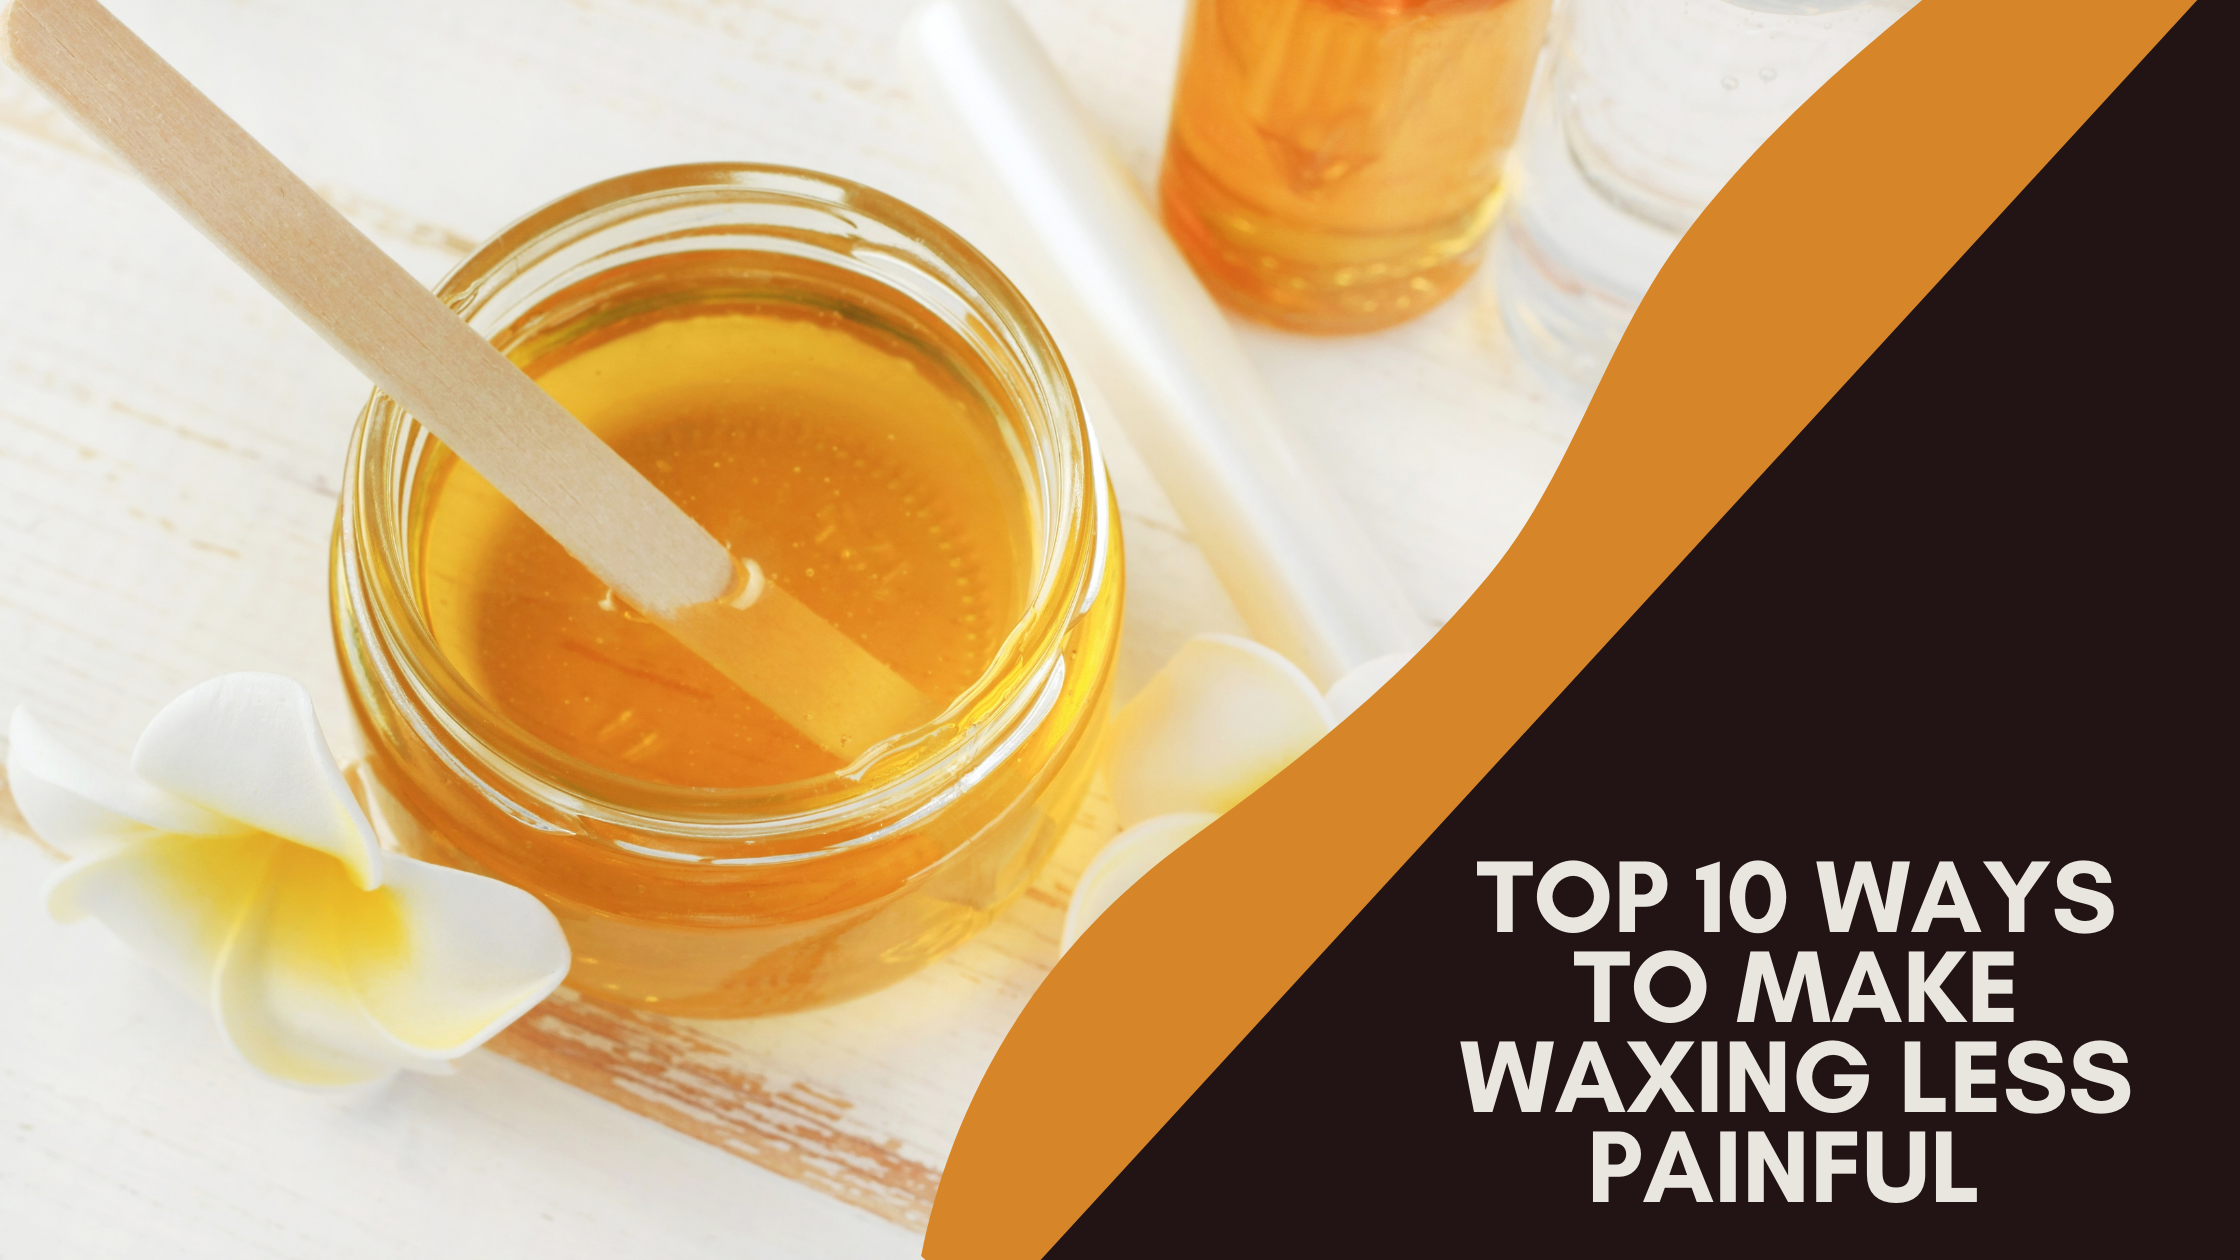 Top 10 Ways To Make Waxing Less Painful (Tricks & Tips)